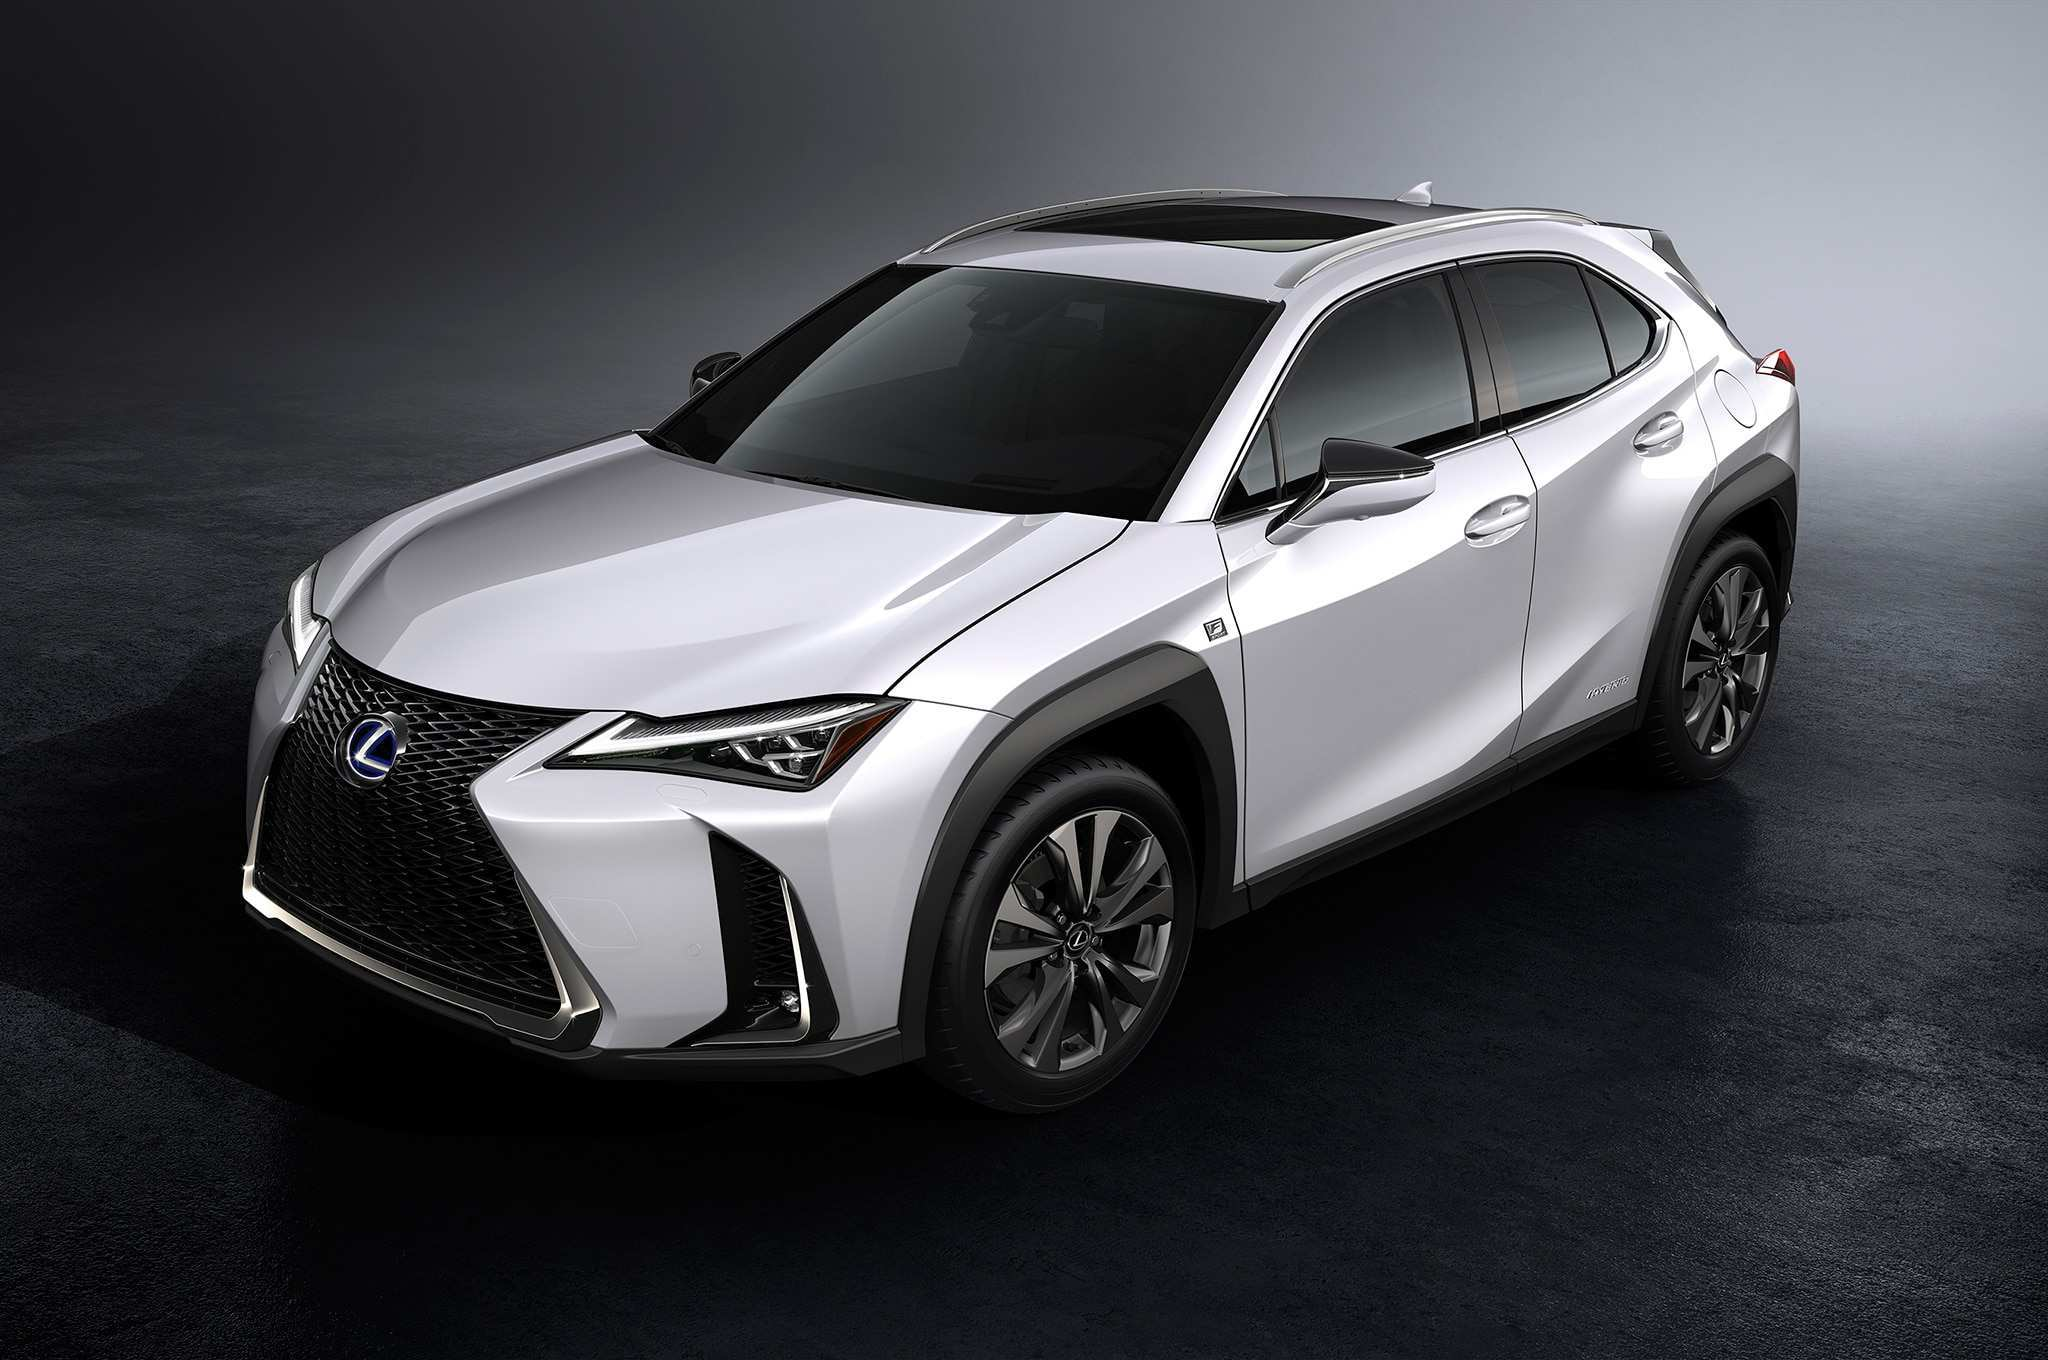 43 All New Best When Does Lexus Release 2019 Models Engine Exterior by Best When Does Lexus Release 2019 Models Engine